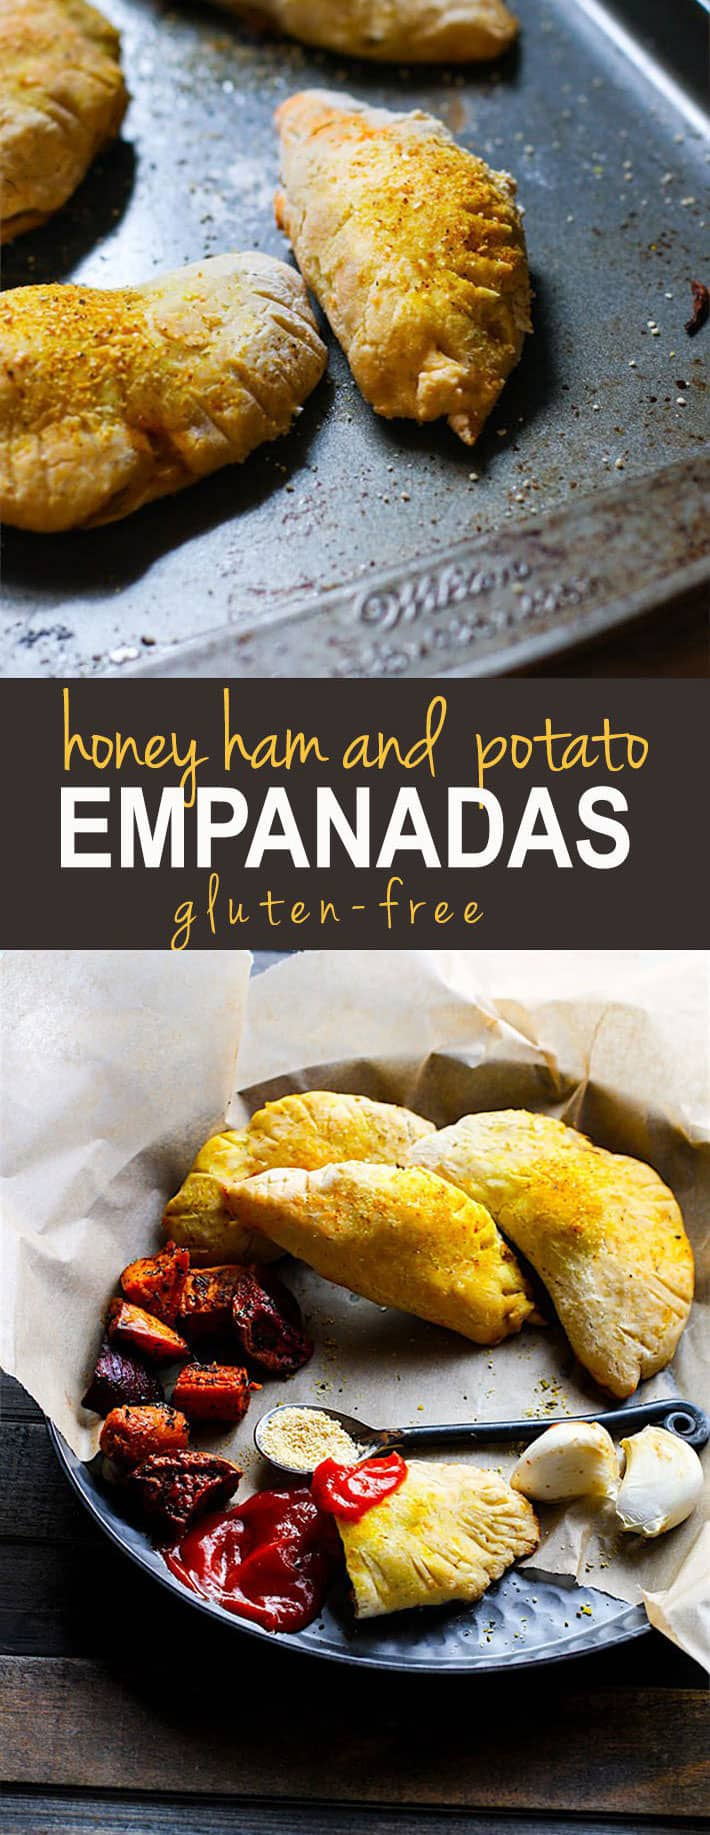 Gluten Free Honey Baked Ham and Potato Empanadas. Healthy Honey Baked Ham and sweet potatoes stuffed and baked in gluten free dough with tasty spices! A great appetizer, snack, and comfort food made easy! @cottercrunch